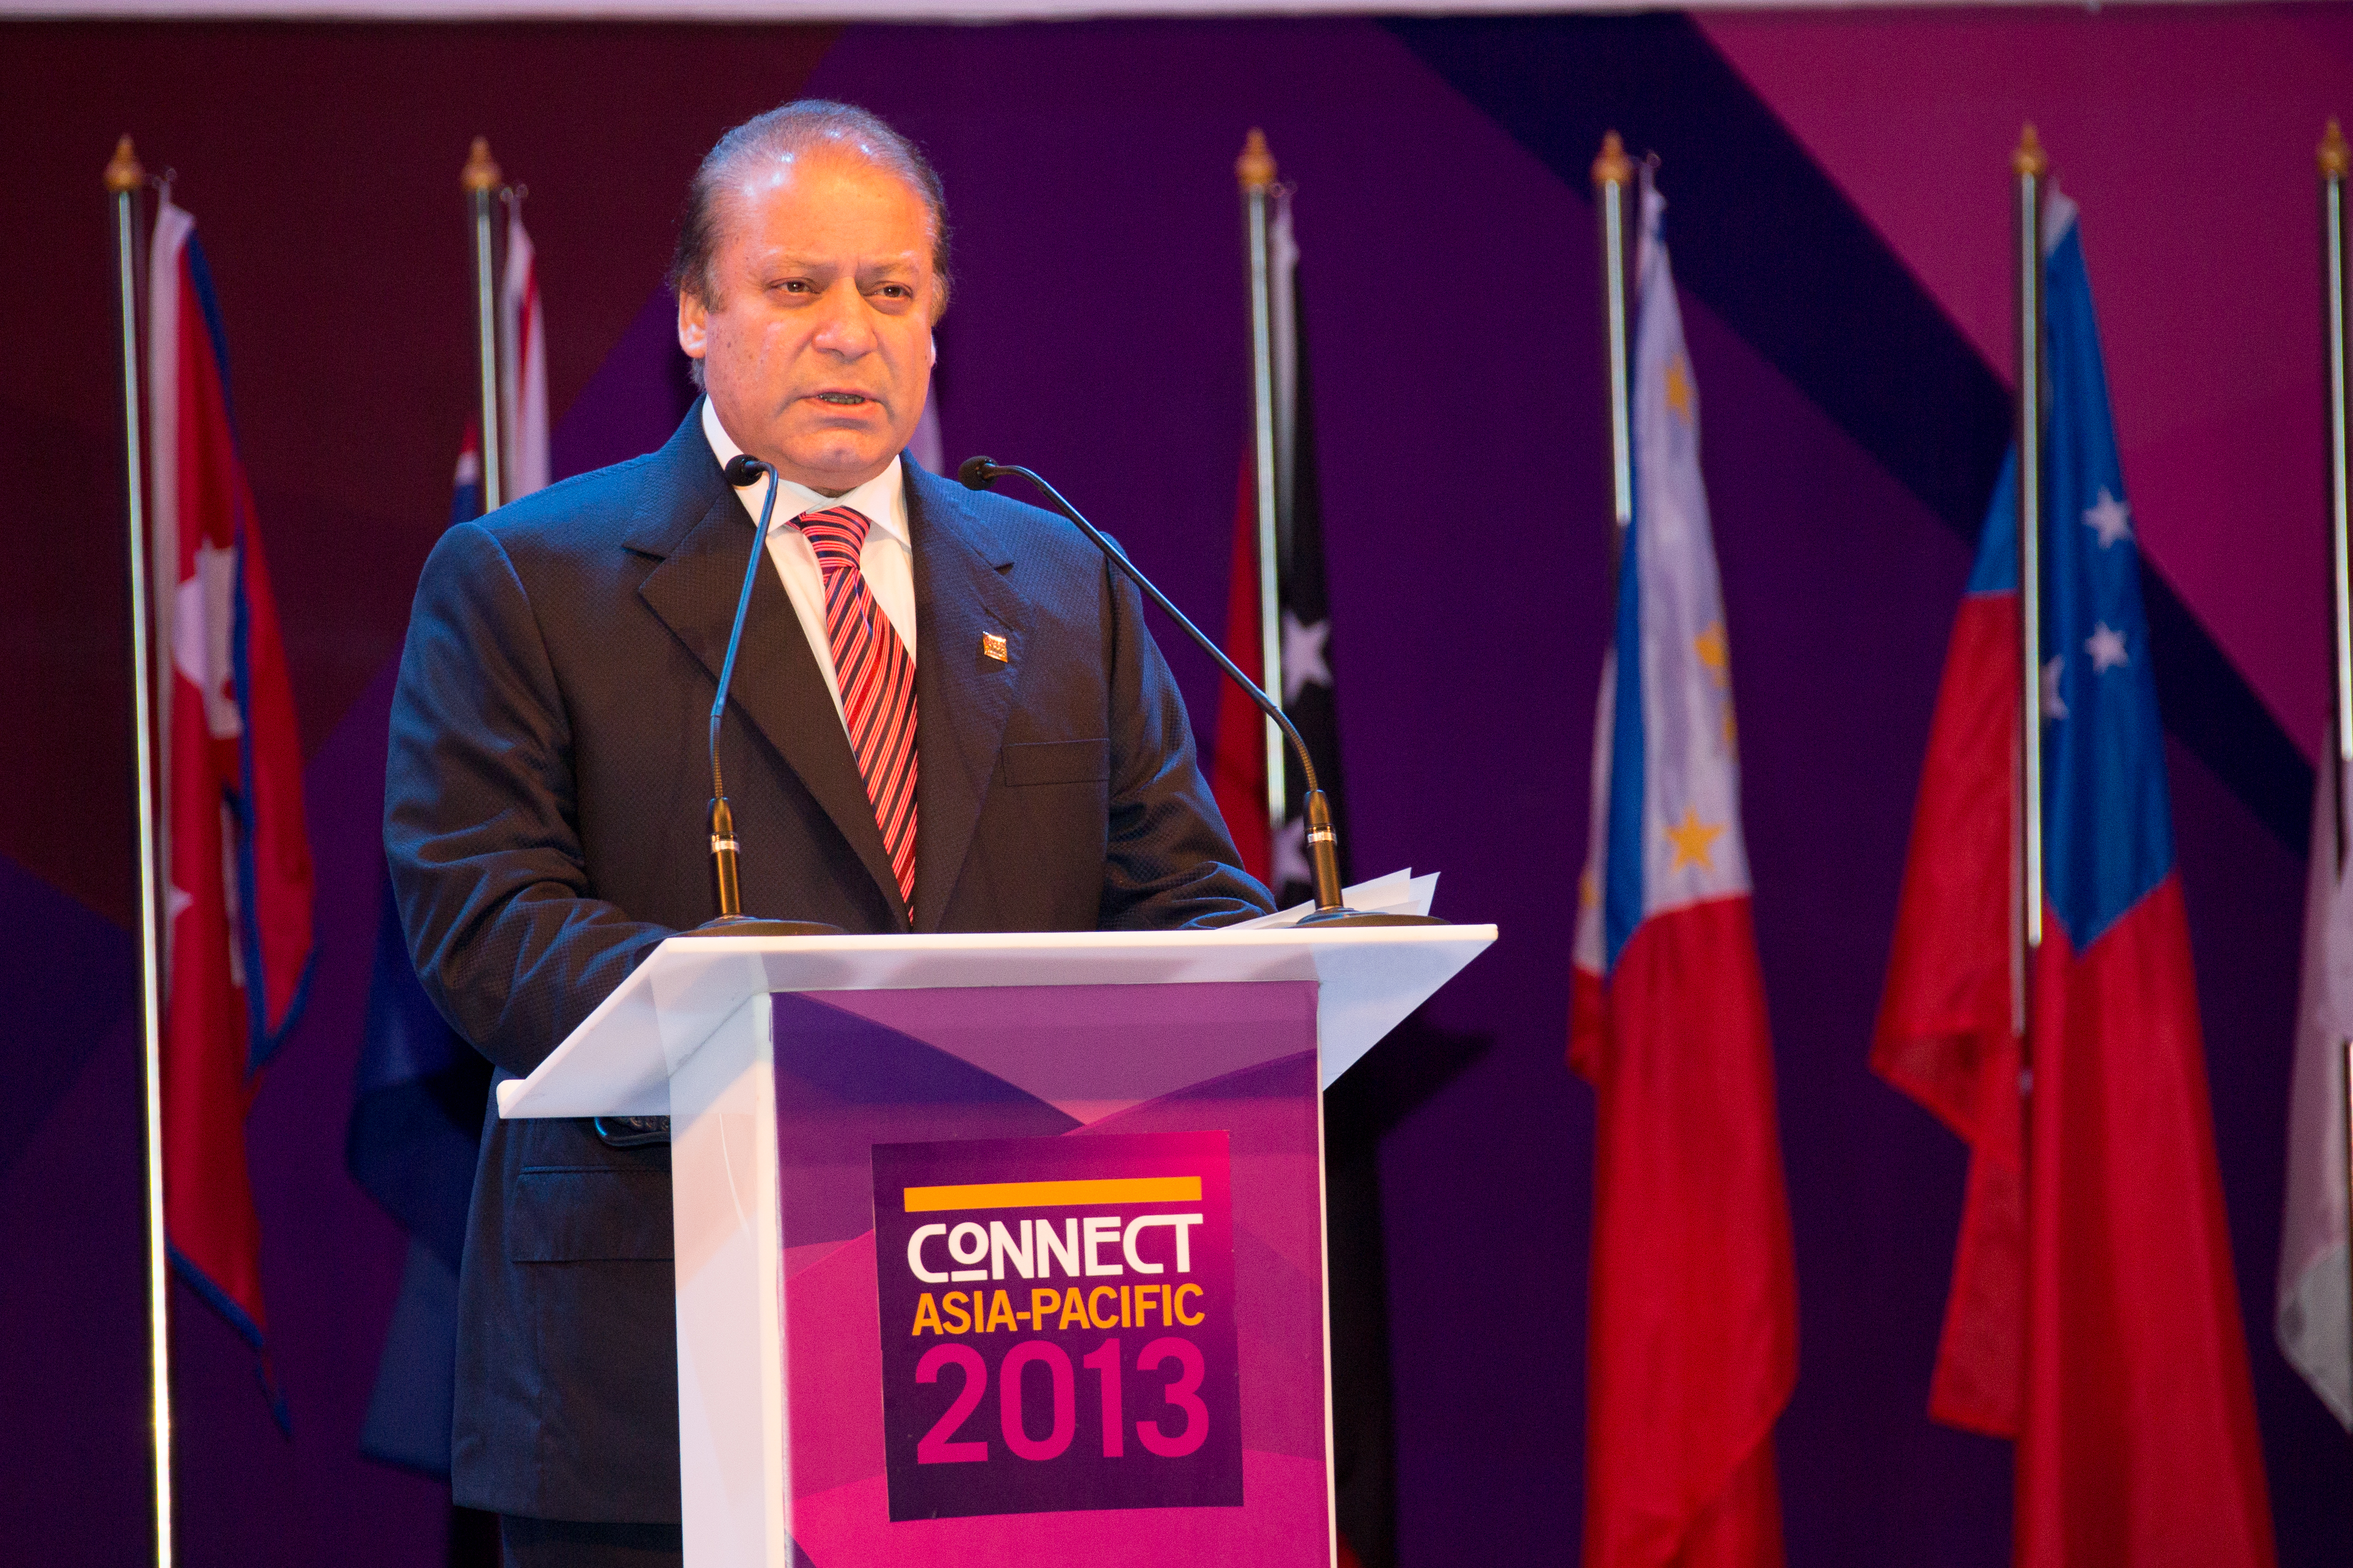 Former Pakistan PM sentenced to 7 years in prison for corruption